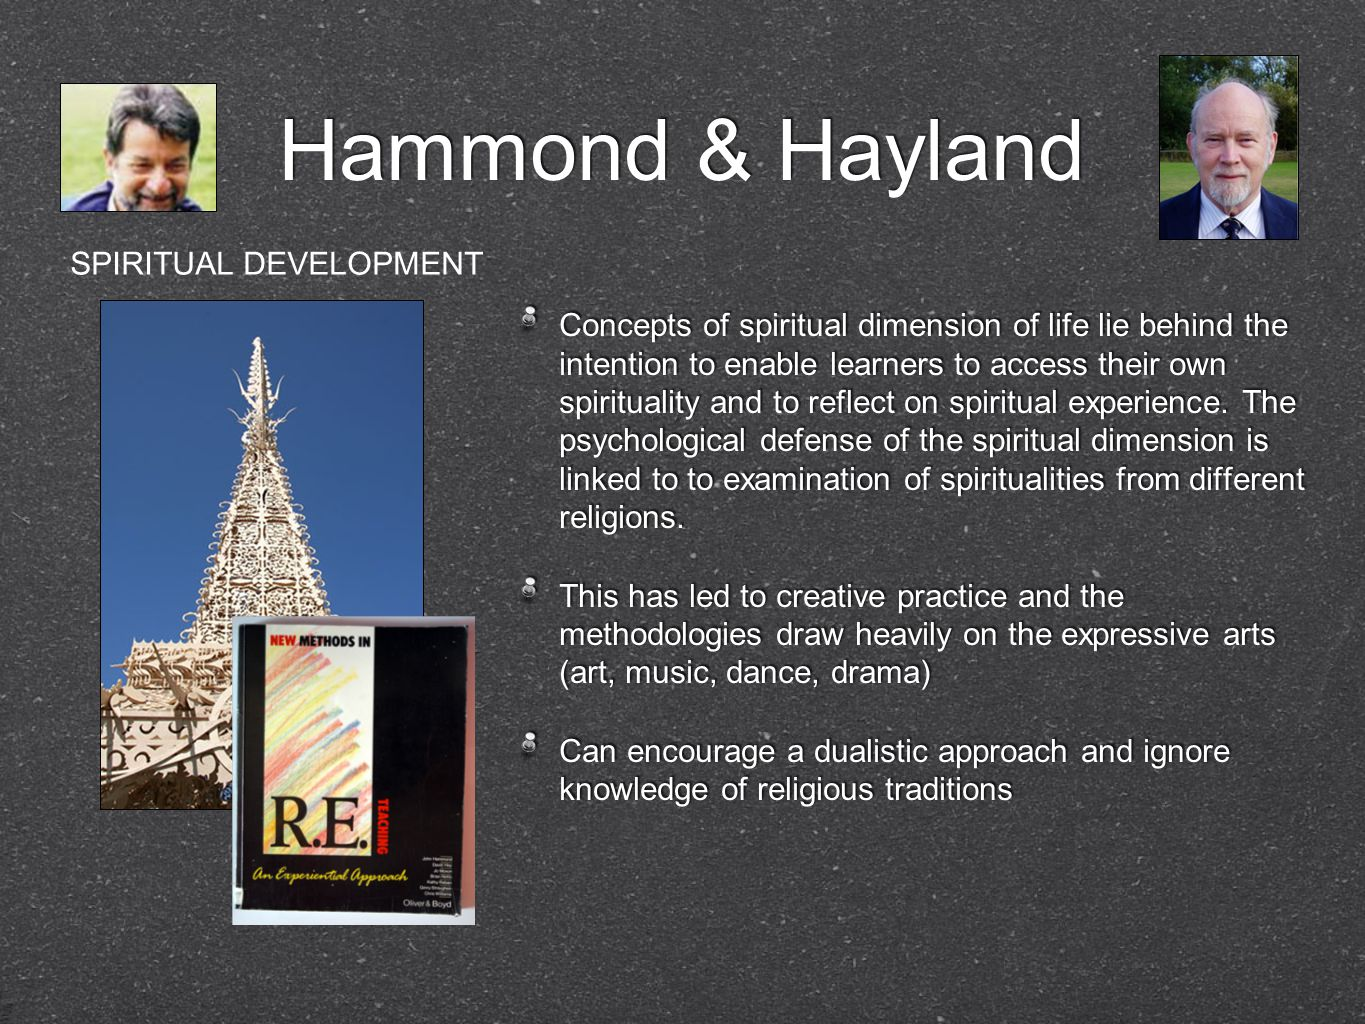 Hammond & Hayland Concepts of spiritual dimension of life lie behind the intention to enable learners to access their own spirituality and to reflect on spiritual experience.